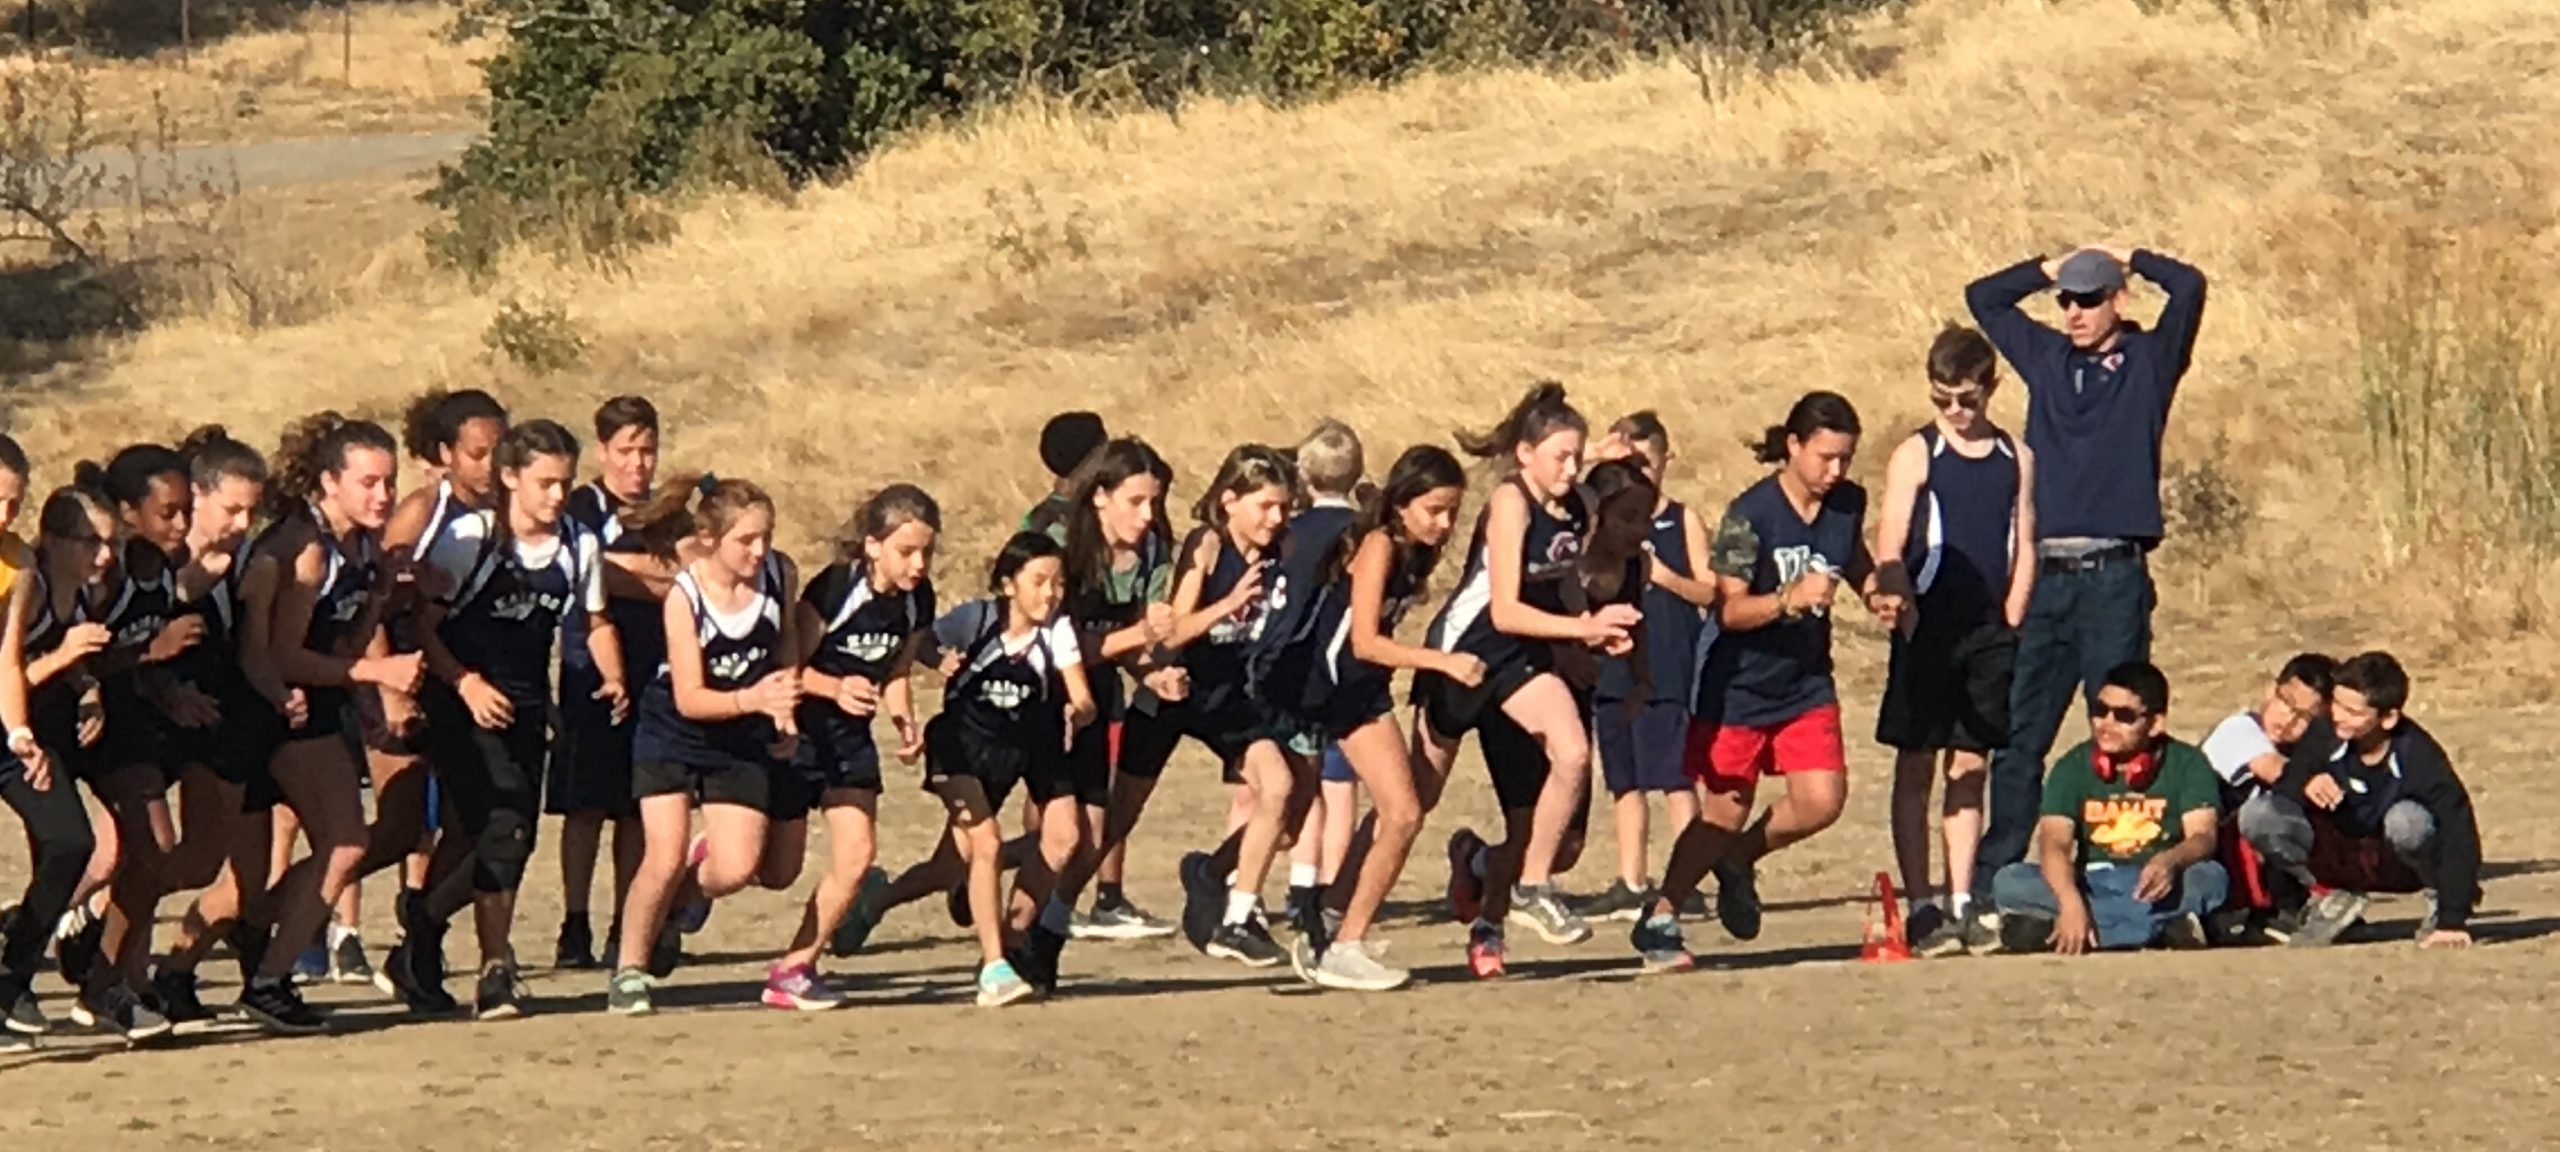 VCS middle school cross country